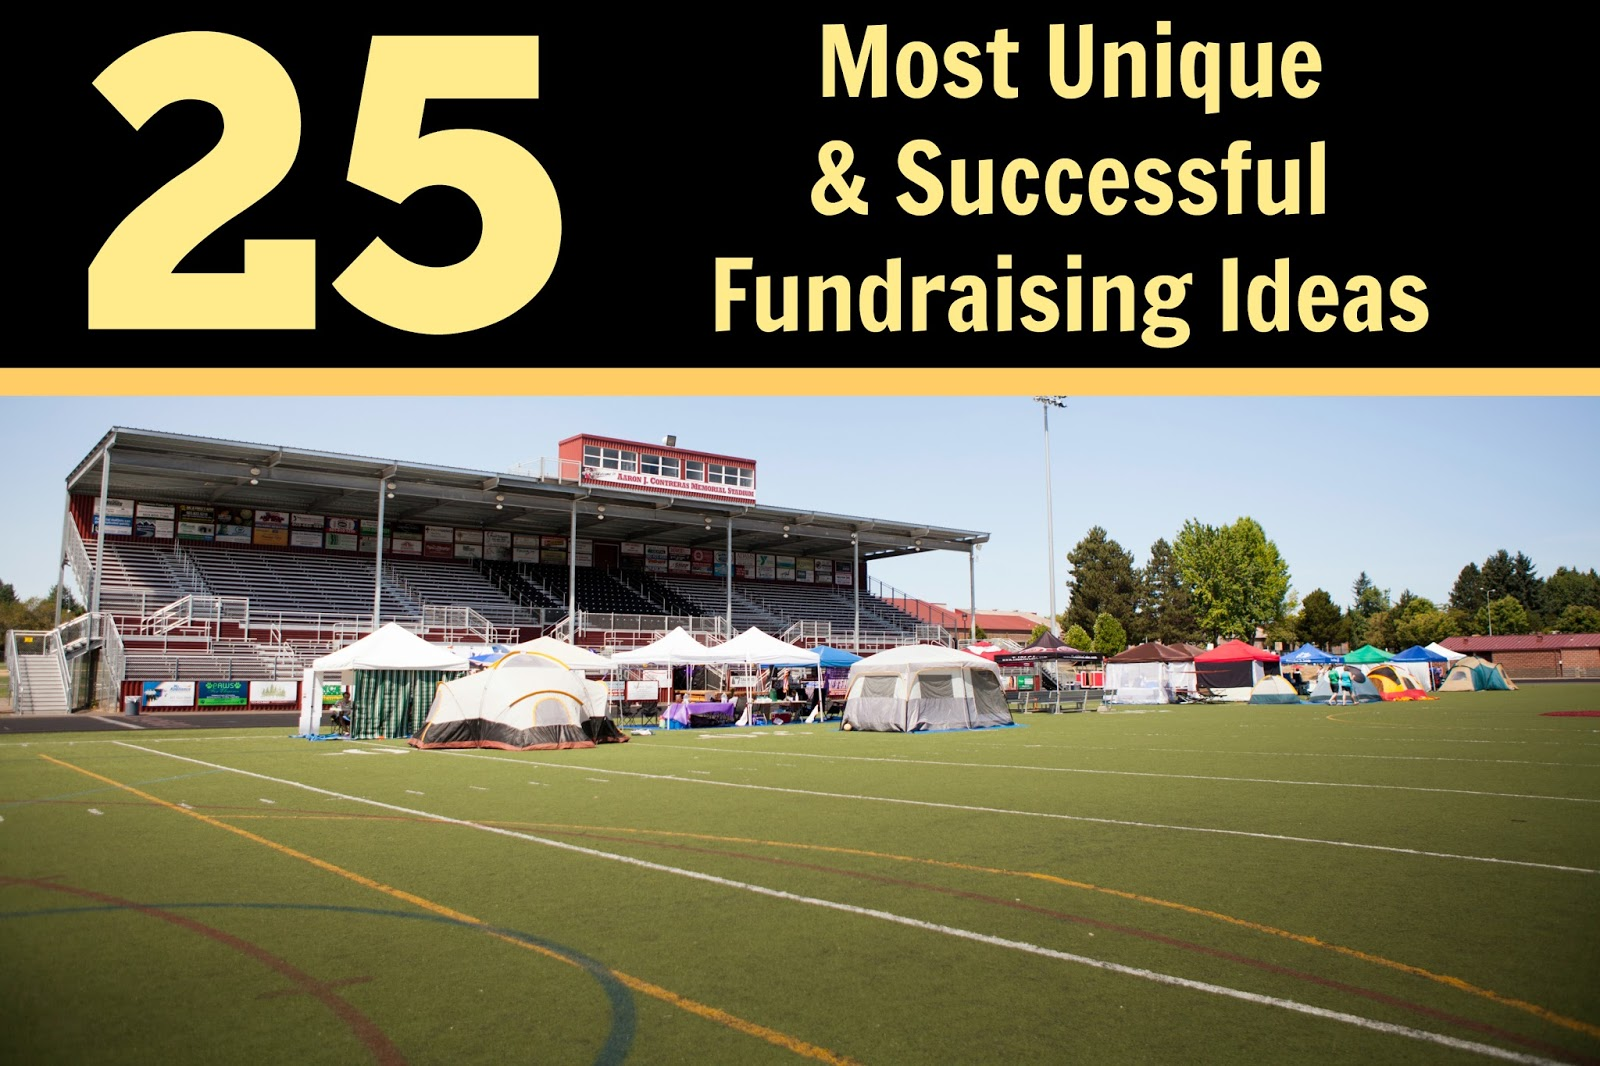 Health love fire january 2016 here are 25 ideas for awesome fundraisers that have been successful in events ive been a part of solutioingenieria Image collections